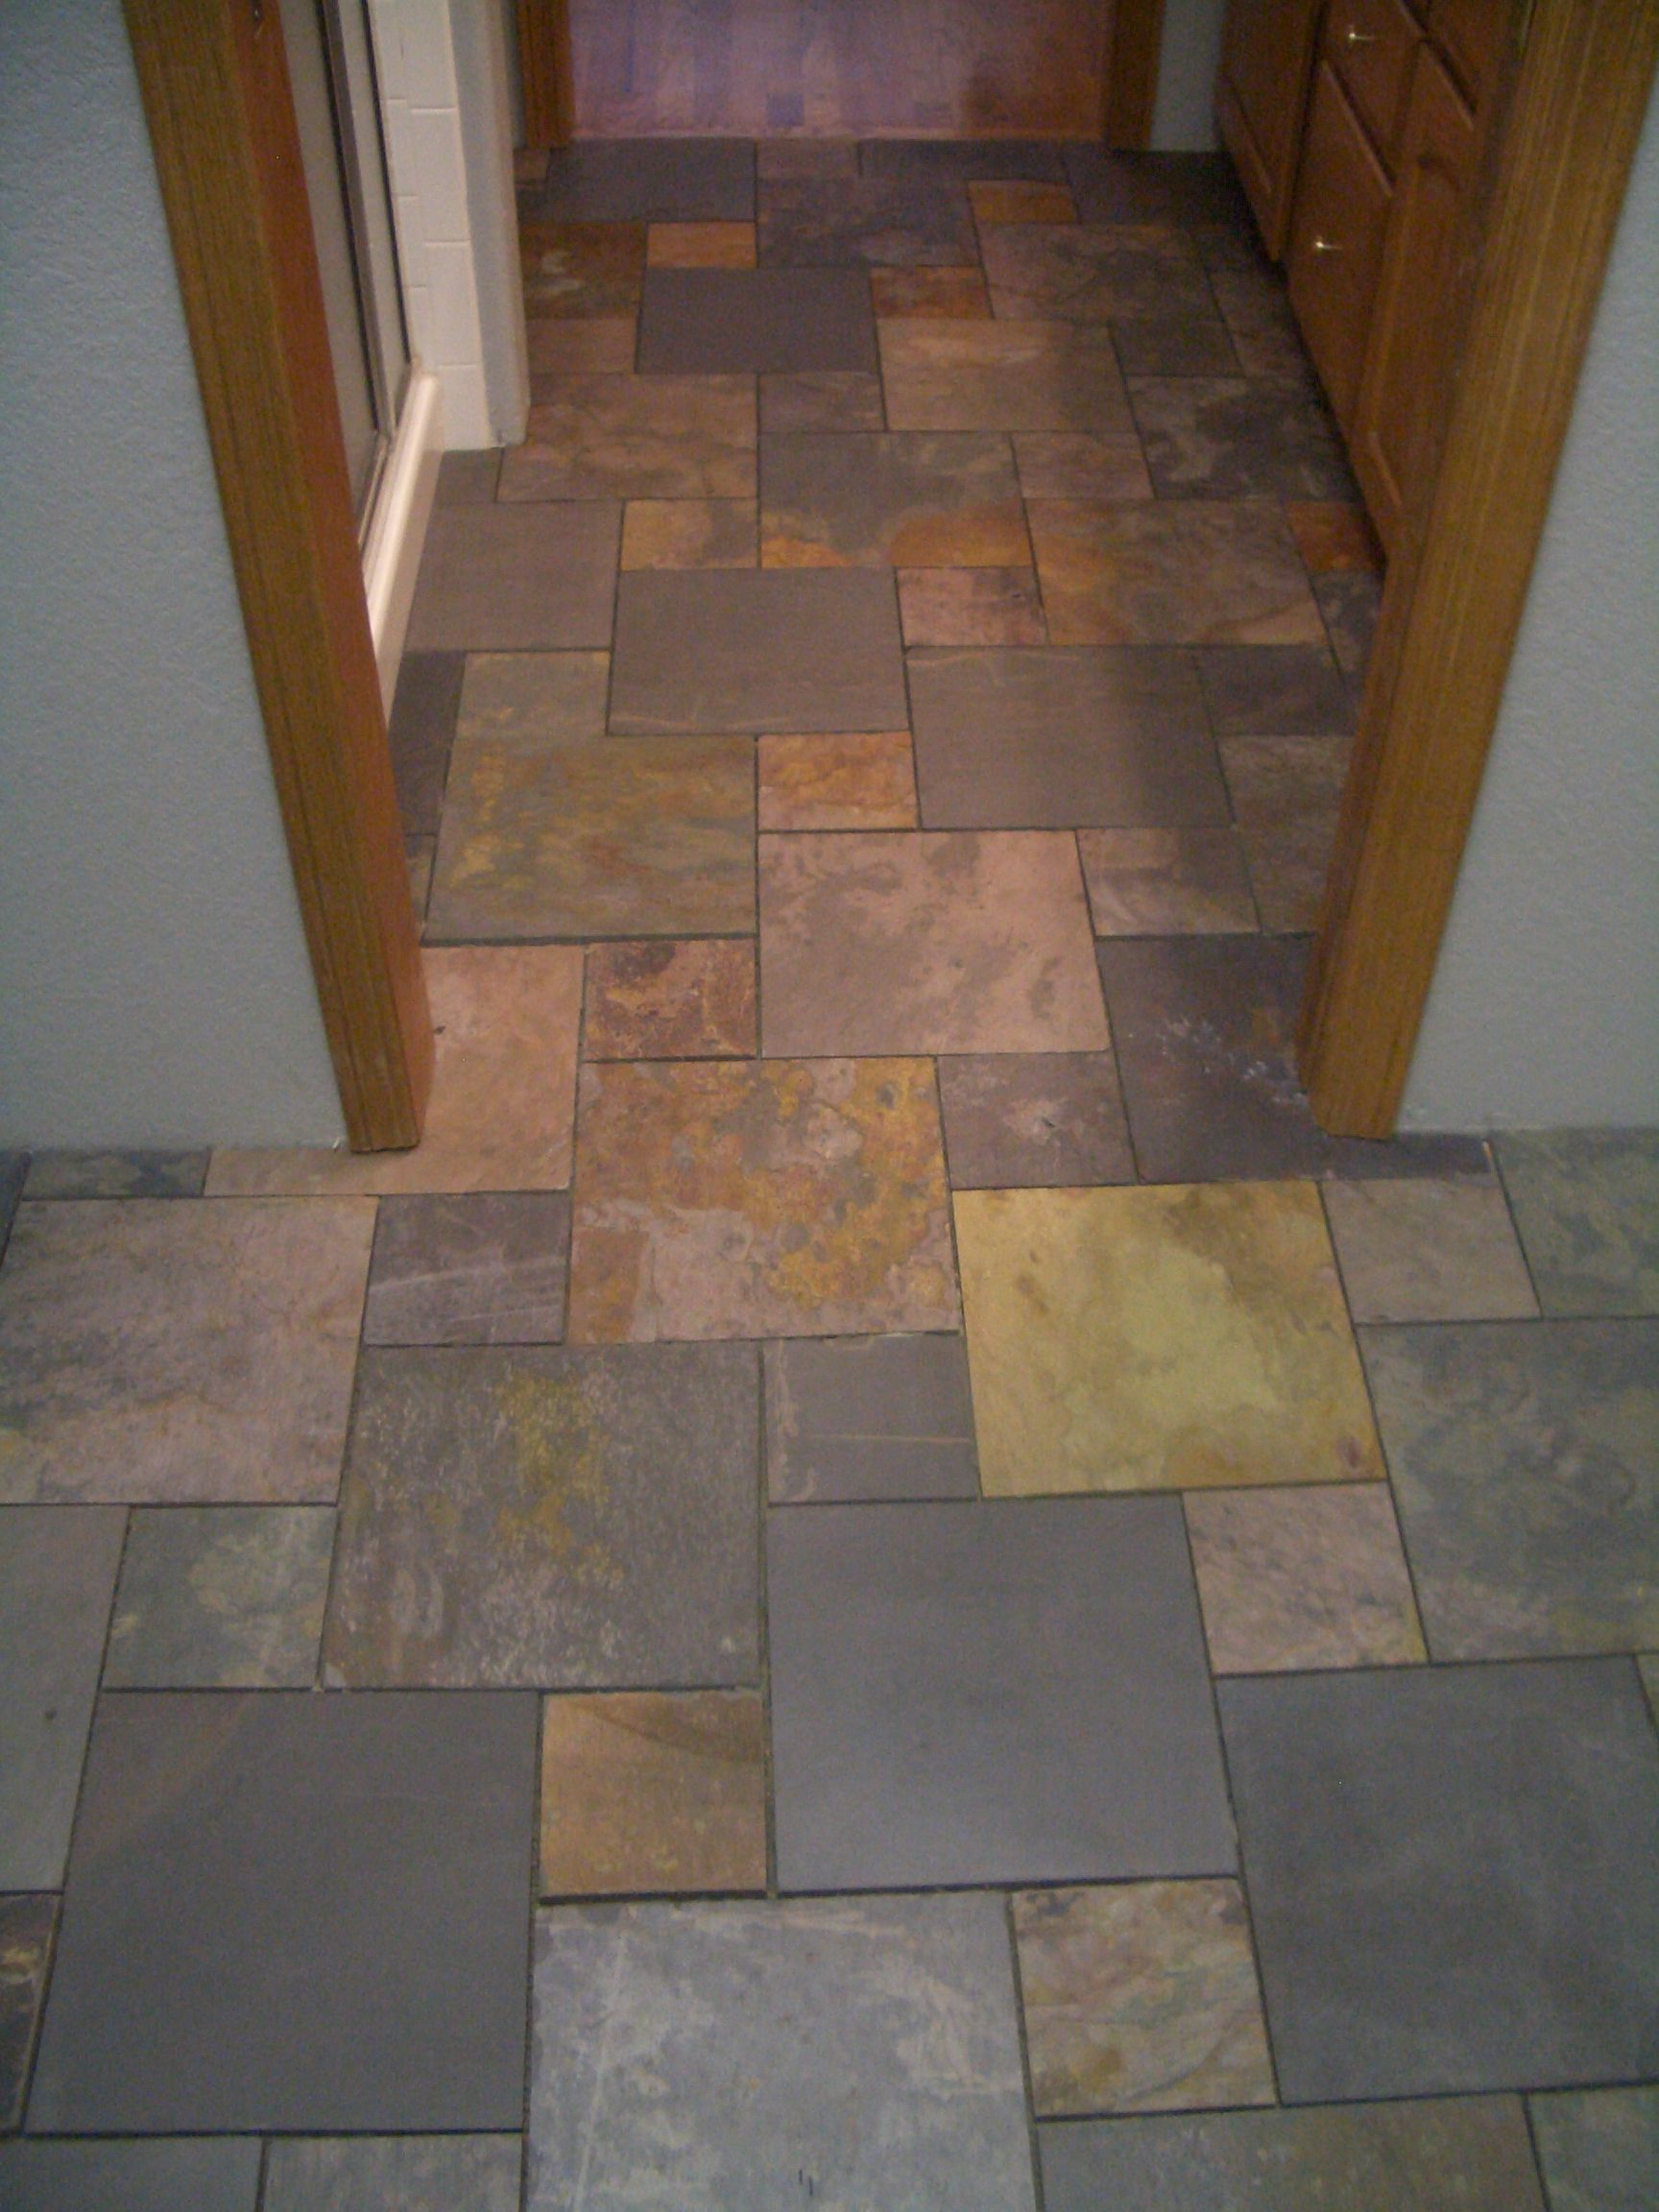 Bathroom floor tile ideas recently finished a bathroom laundry bathroom floor tile ideas recently finished a bathroom laundry room floor in fort collins doublecrazyfo Choice Image